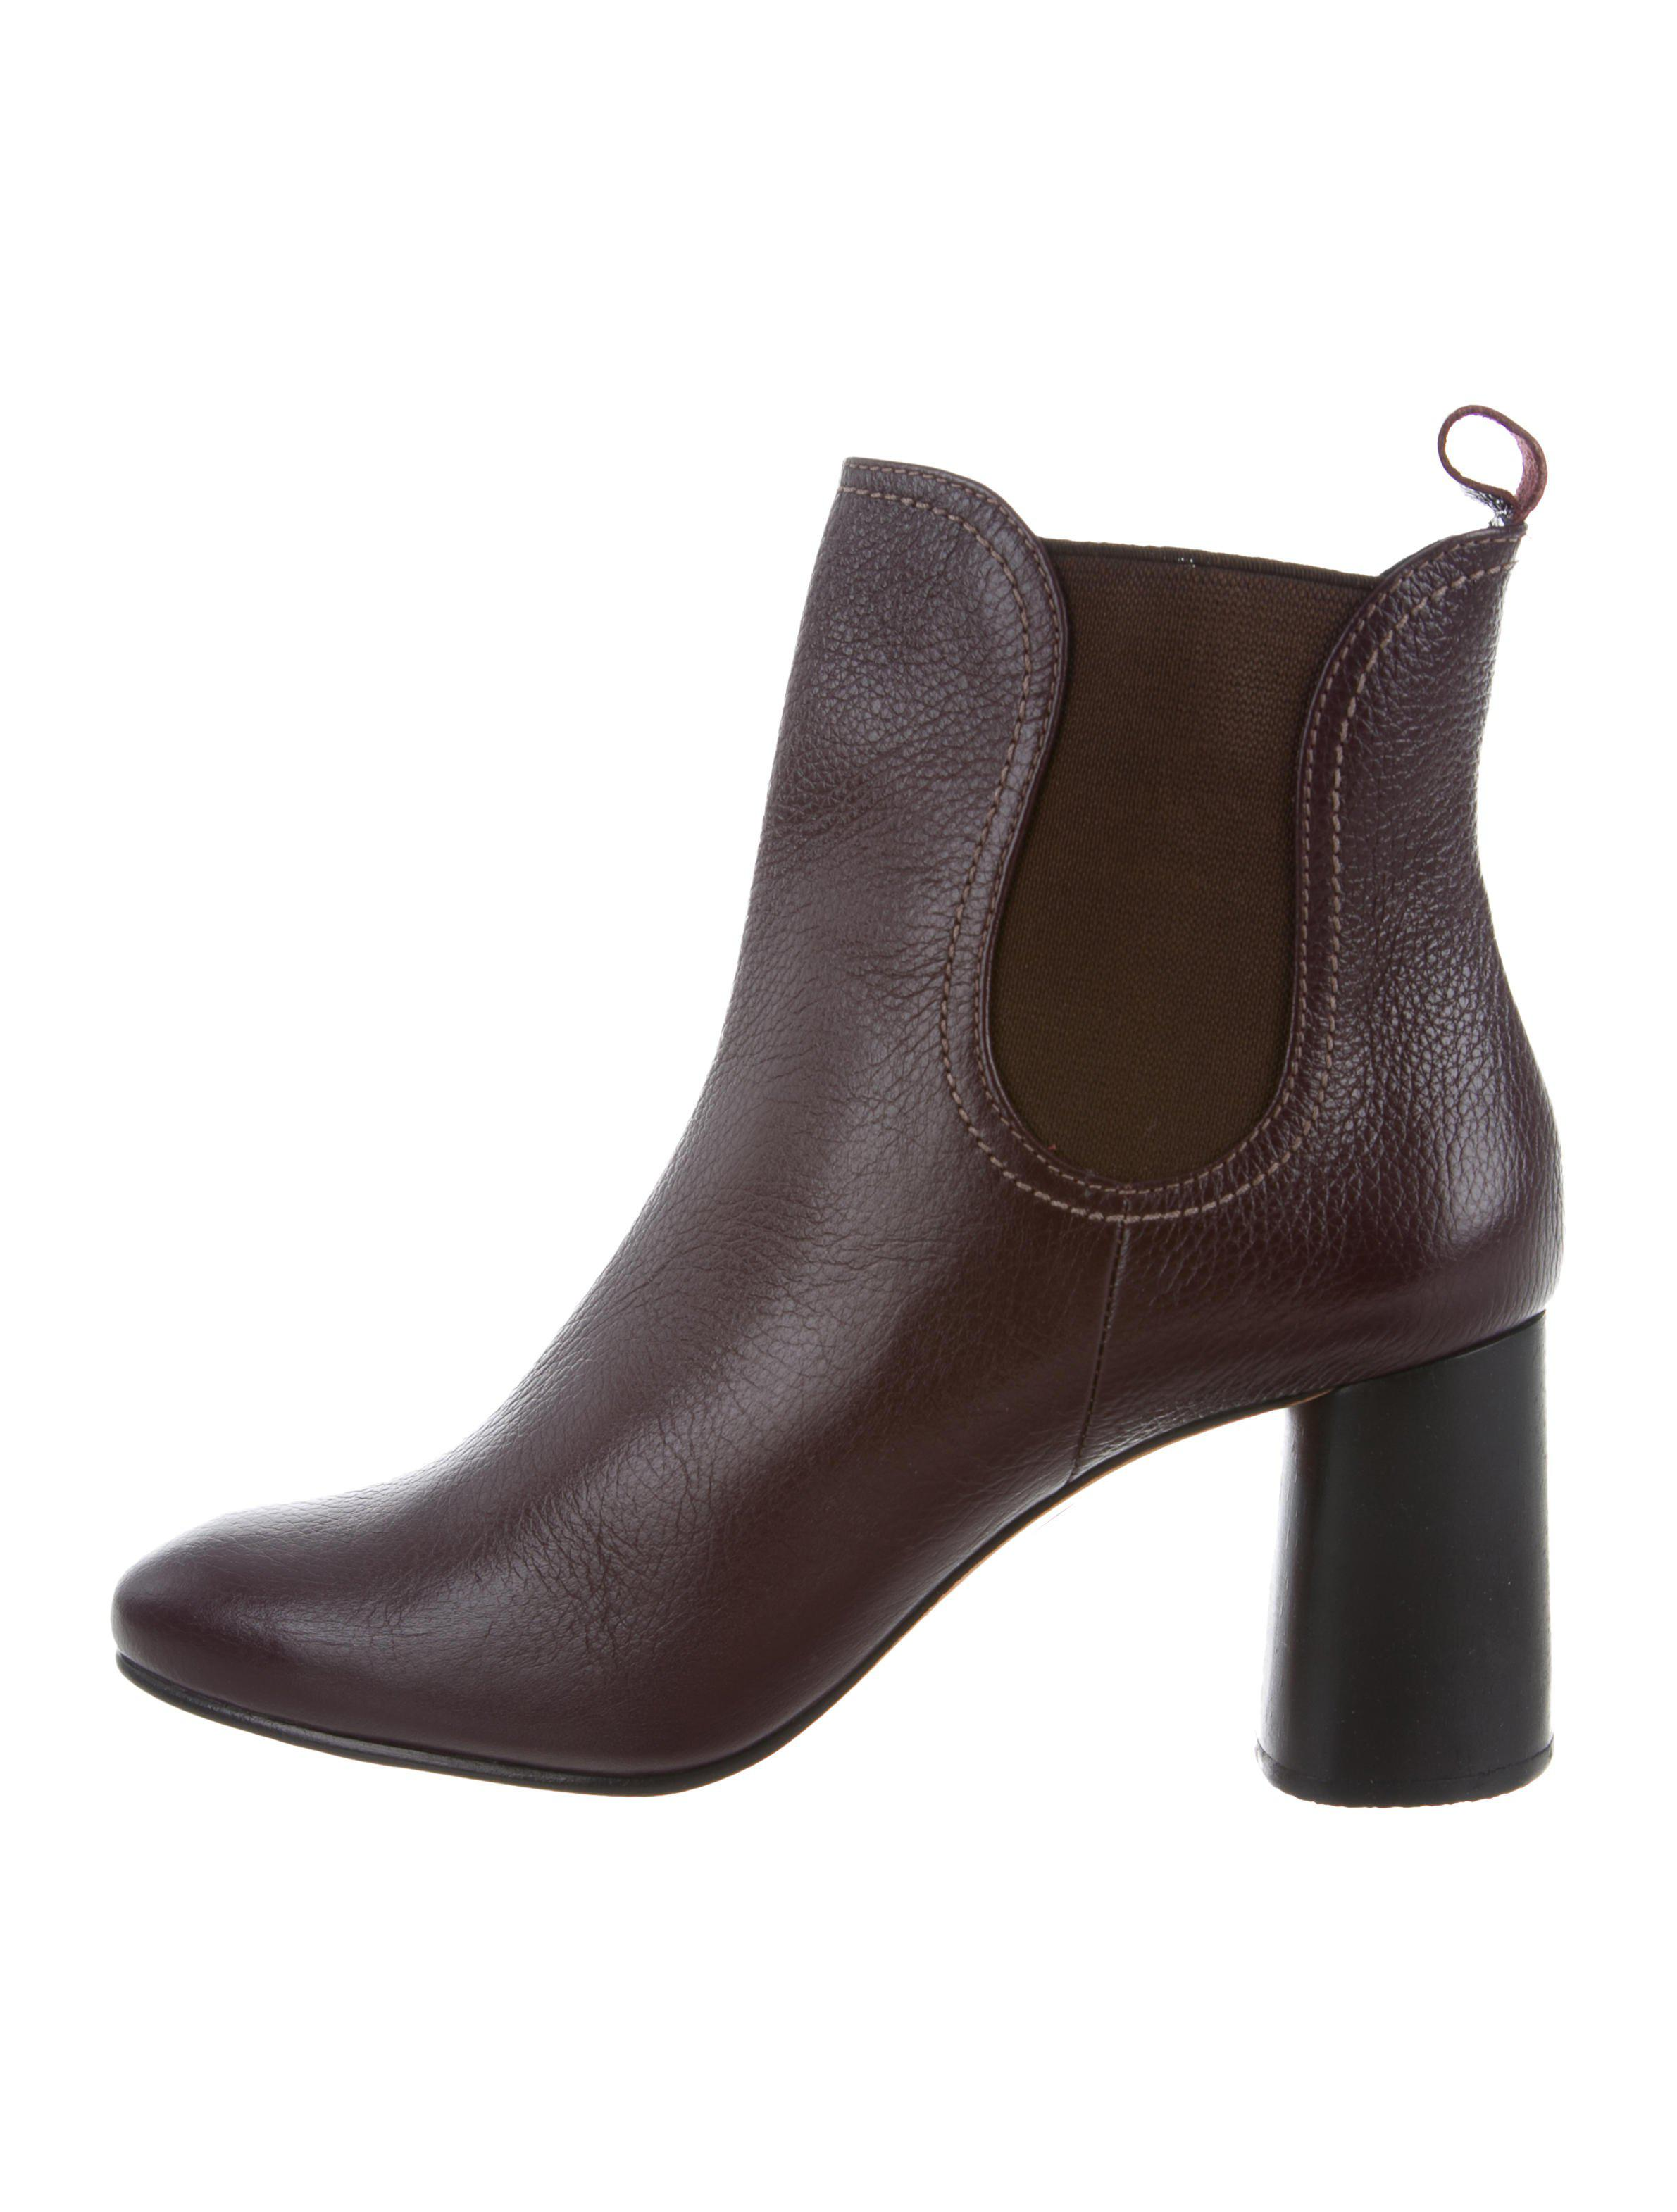 Rachel Comey Patent Leather Ankle Boots w/ Tags 100% guaranteed online 100% authentic for sale quality for sale free shipping FLCG4